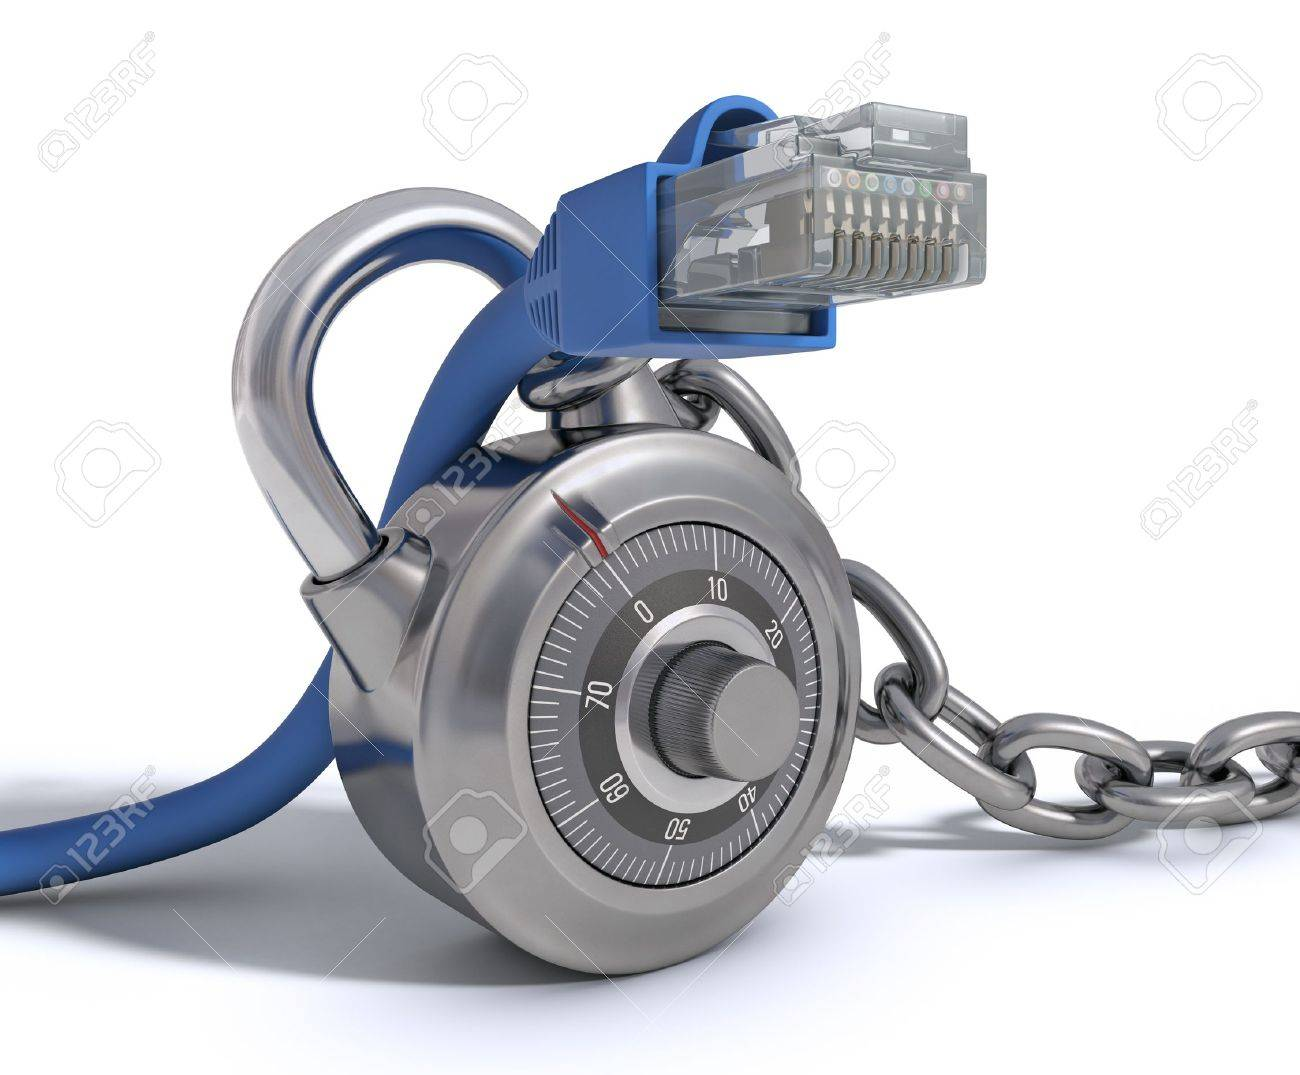 RJ45 Cable protected by conceptual padlock Concept of protection of internet - 12798590